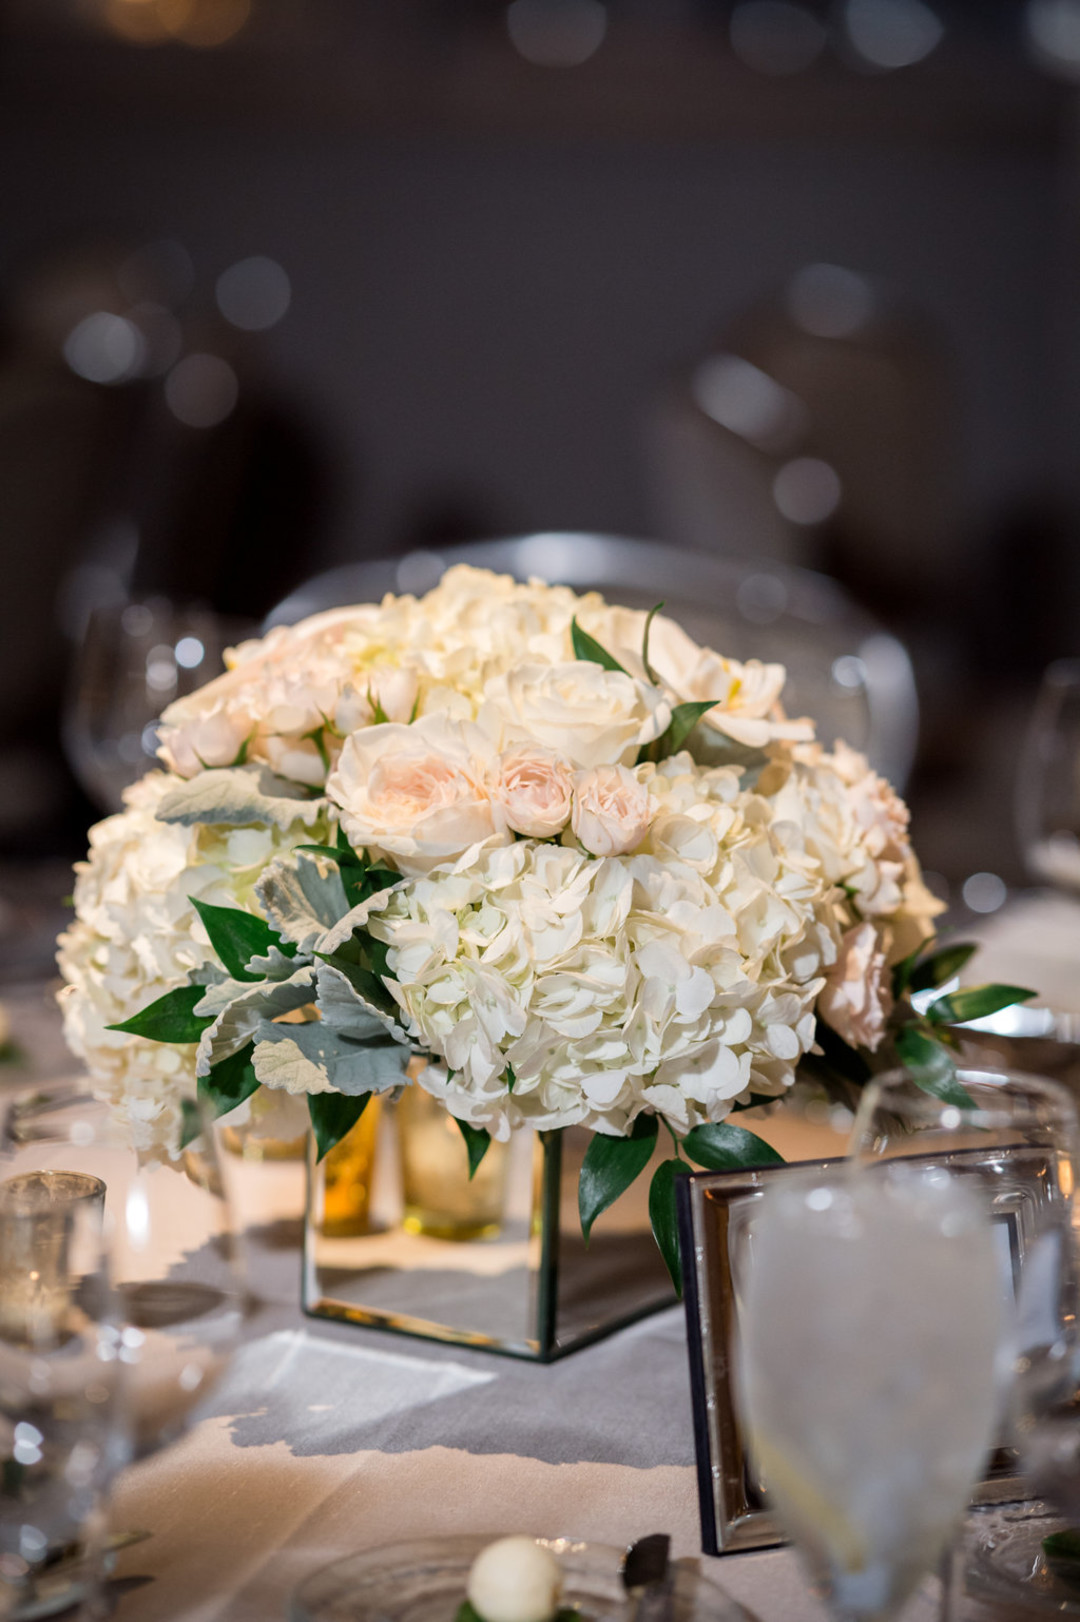 White Rose Center Pieces The Standard Room Chicago Wedding Julia Franzosa Photography